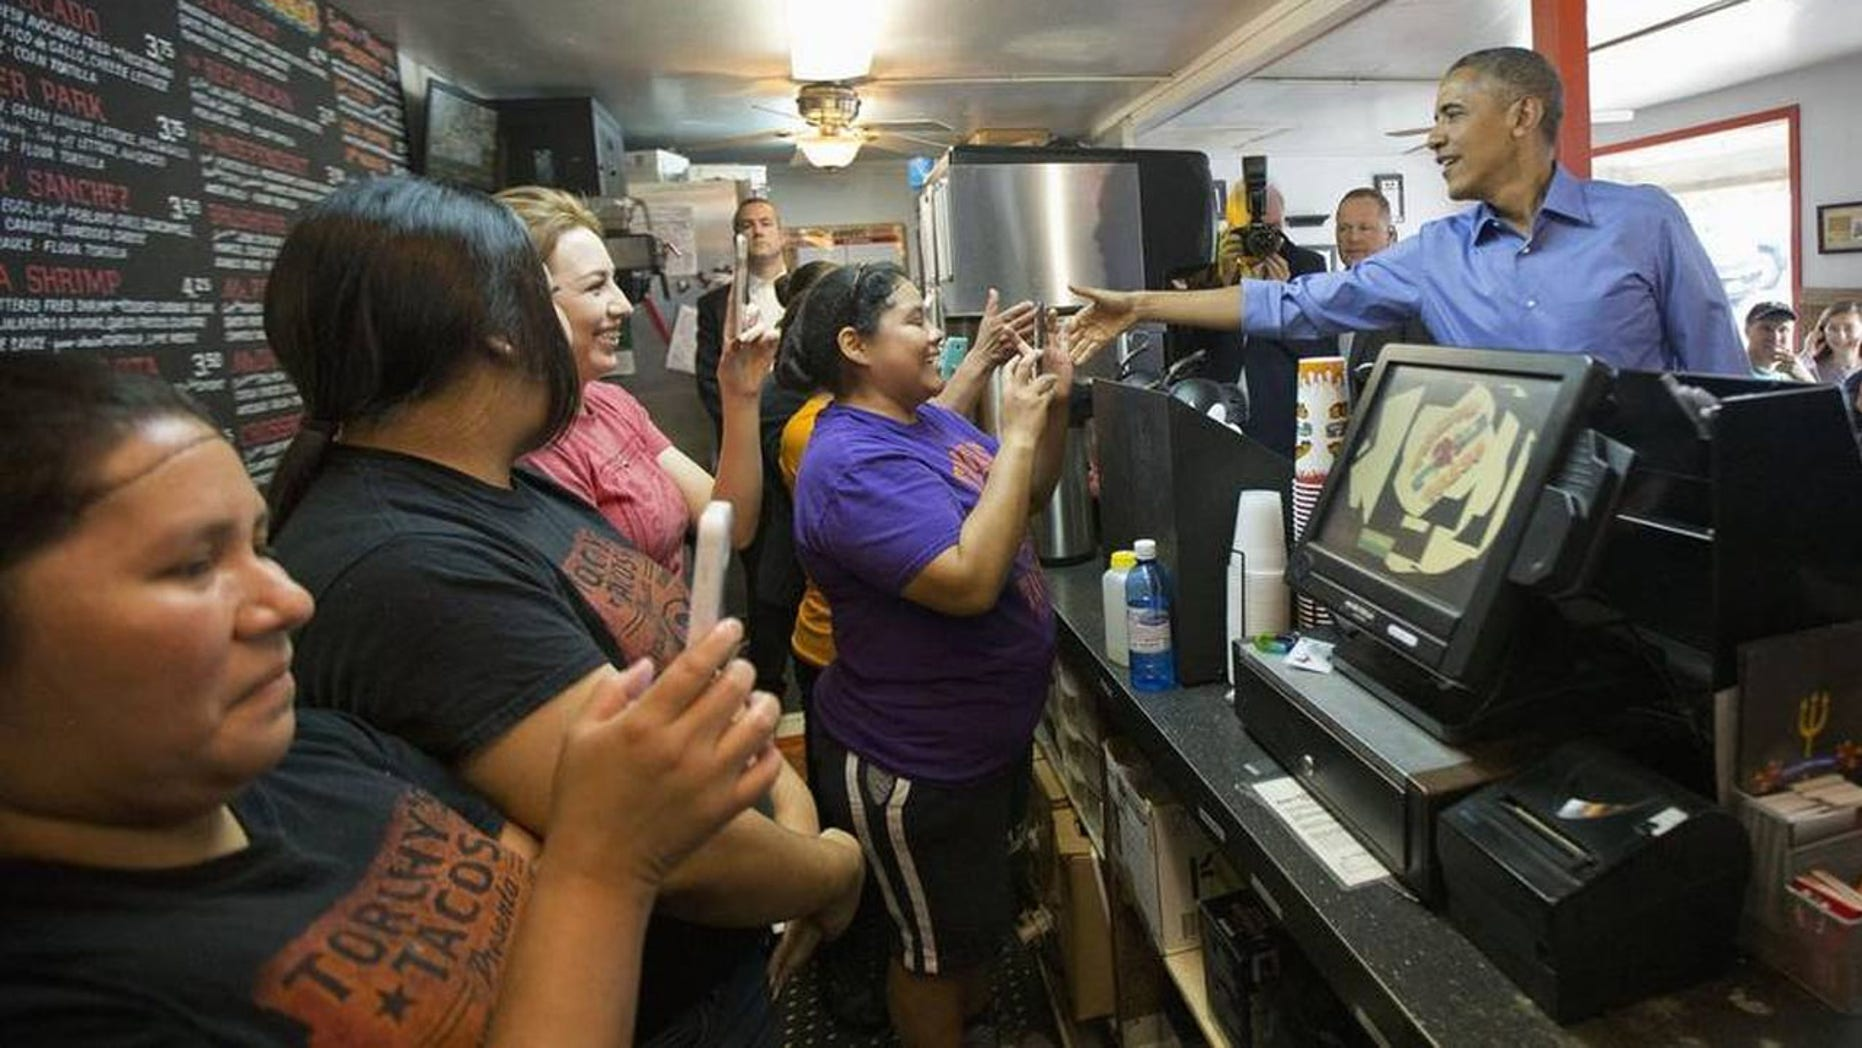 President Barack Obama greets employees during an unannounced stop at Torchy's Tacos in Austin on Friday. There are several Torchy's in North Texas. Obama traveled to Austin, to speak at SXSW.